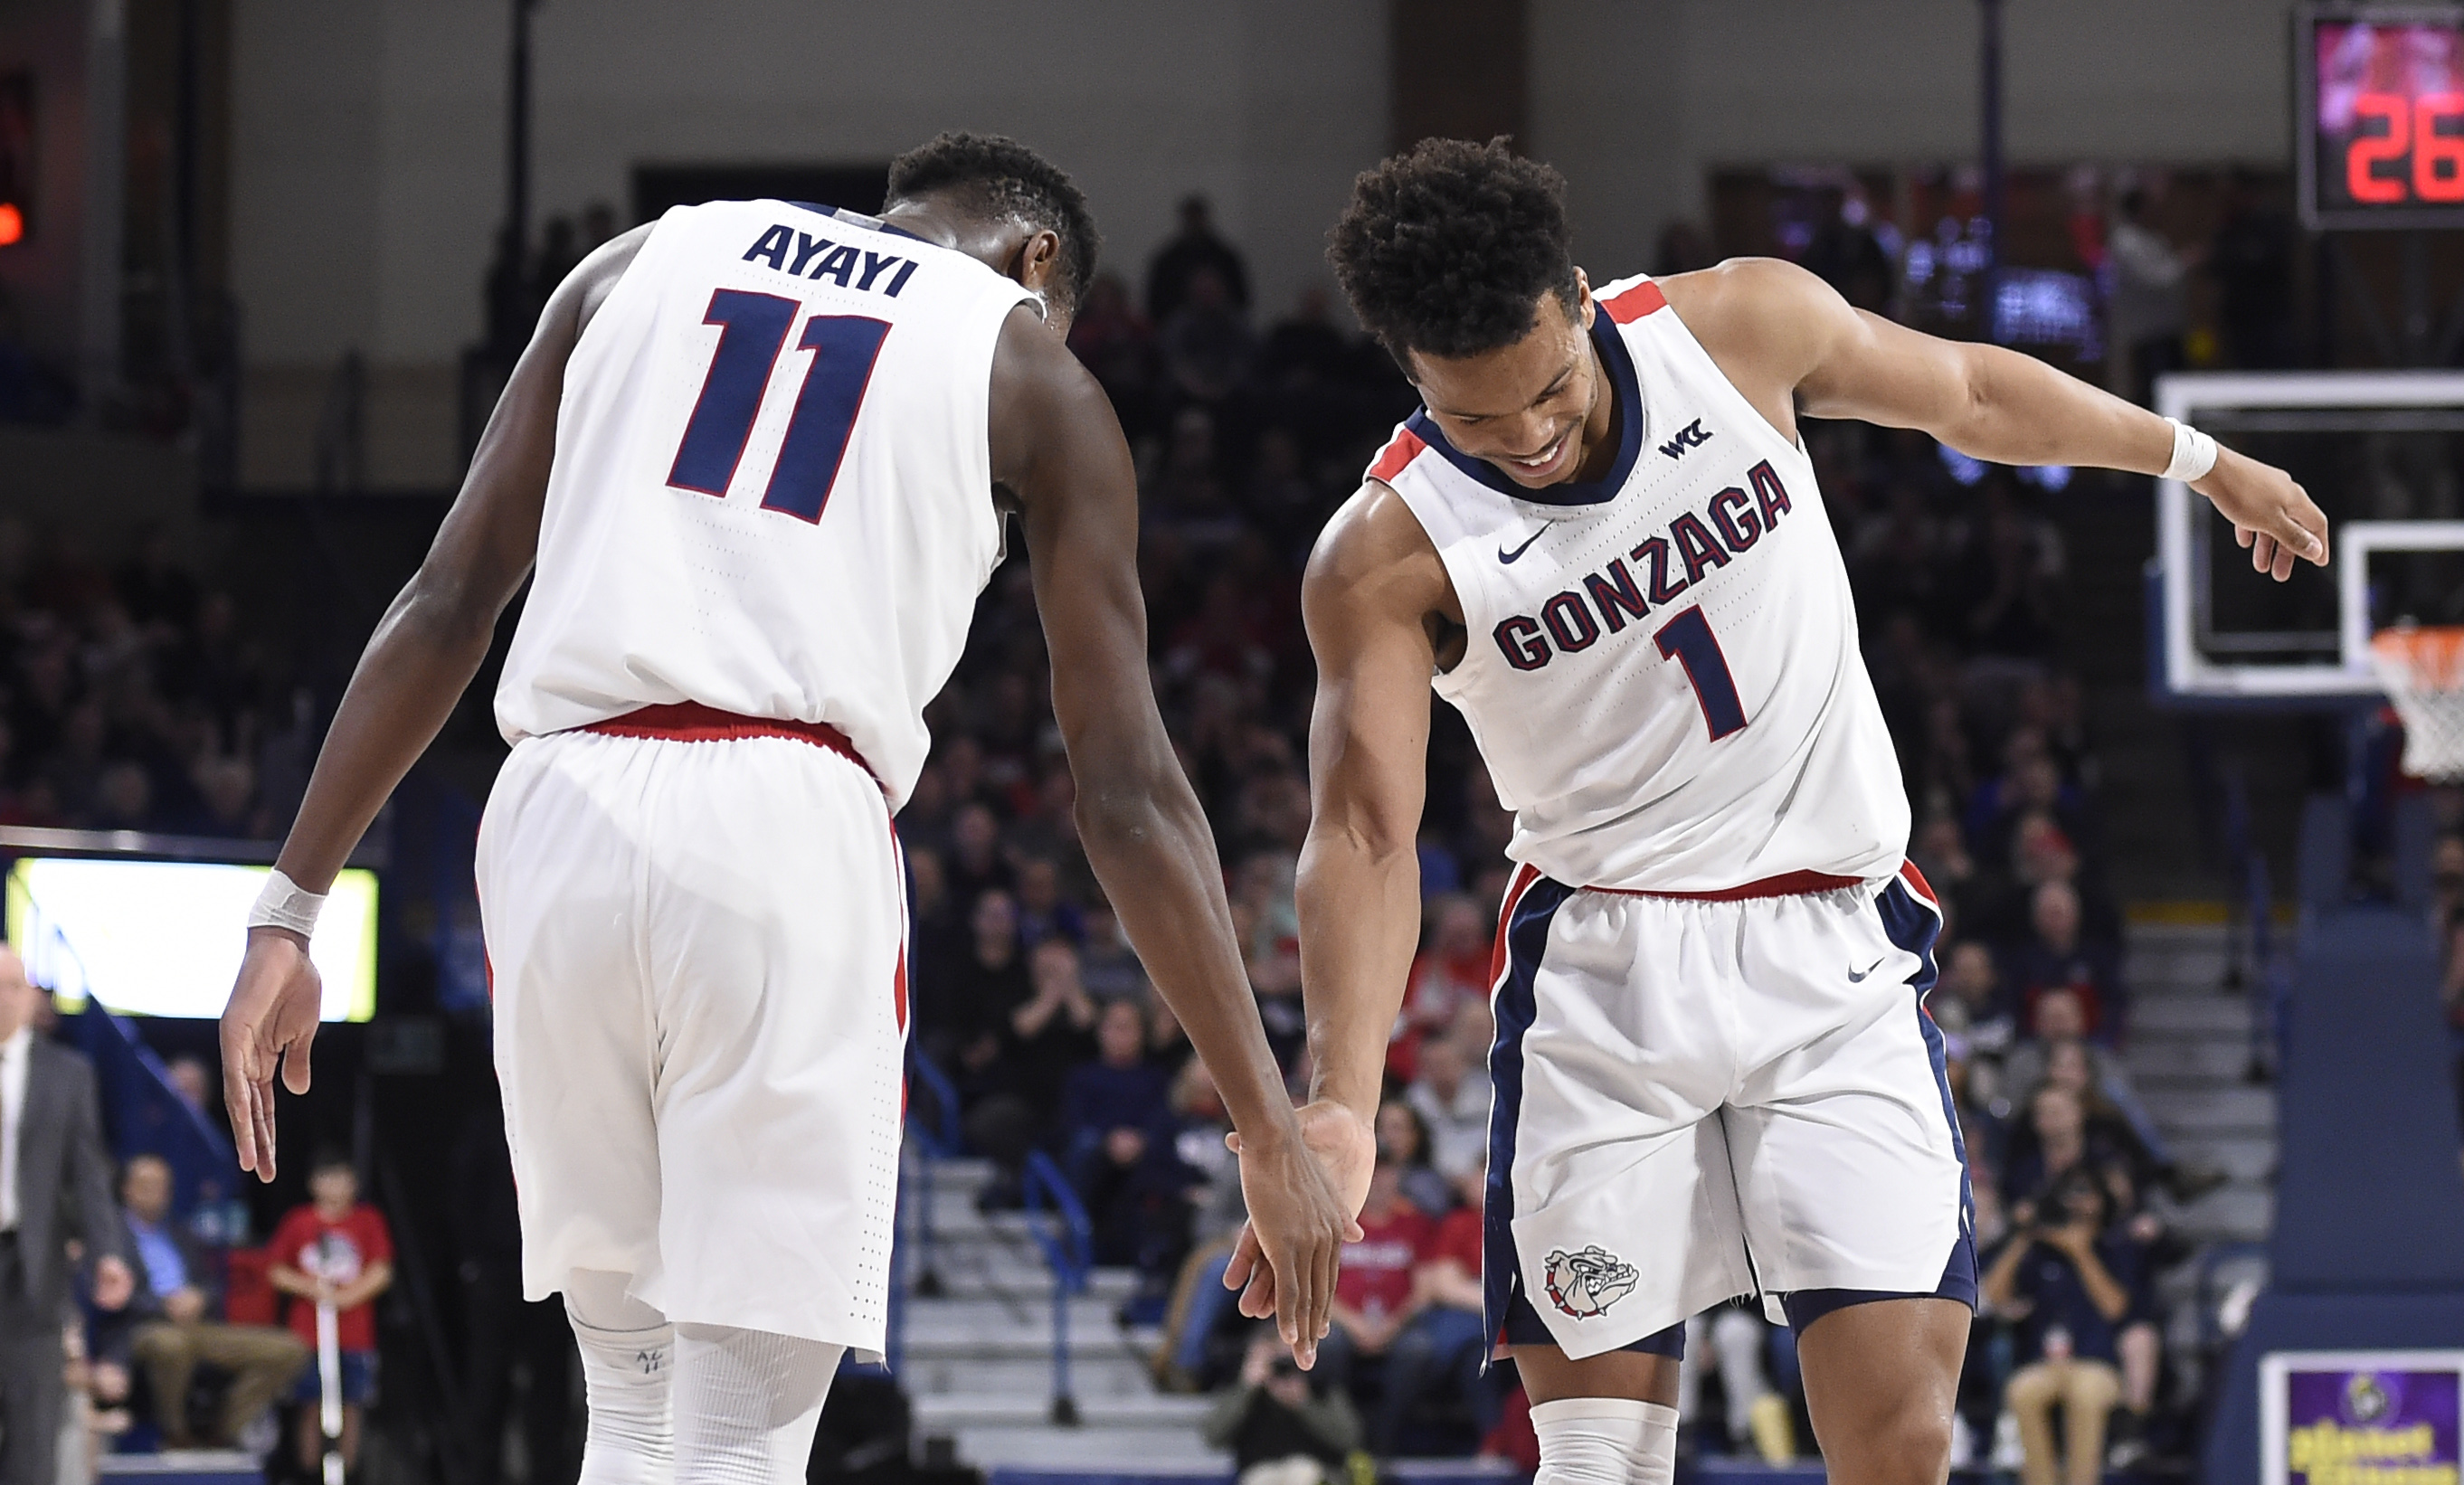 Bracketology 2020: Awful week for top teams shakes up the NCAA tournament field